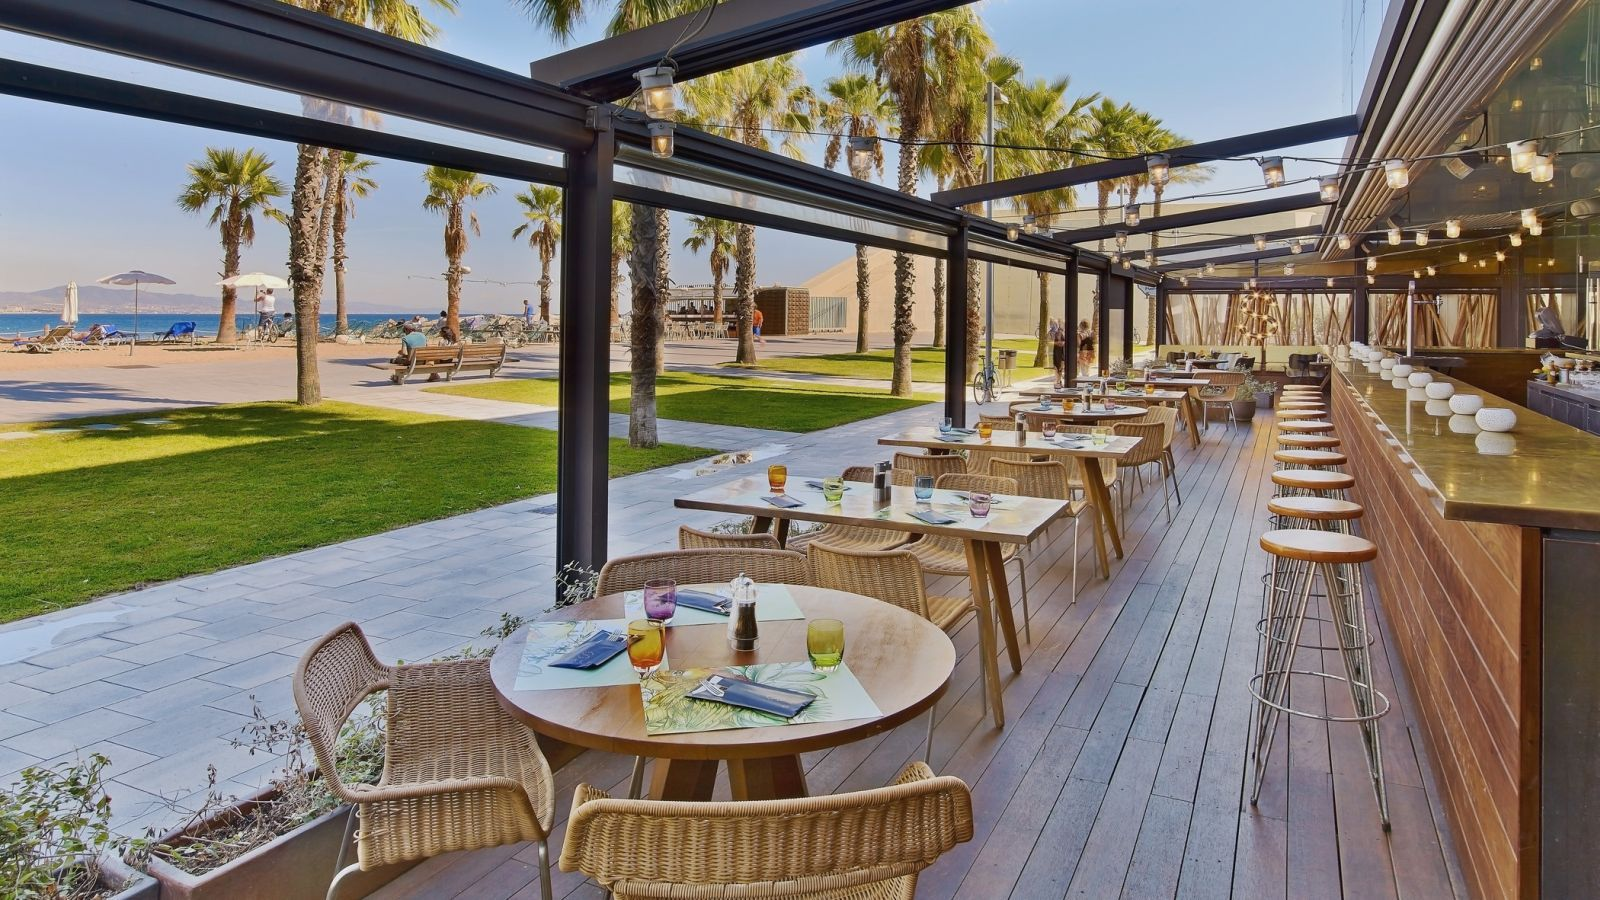 Take sneak peak at our burgers and beachside restaurant for Restaurant with terrace